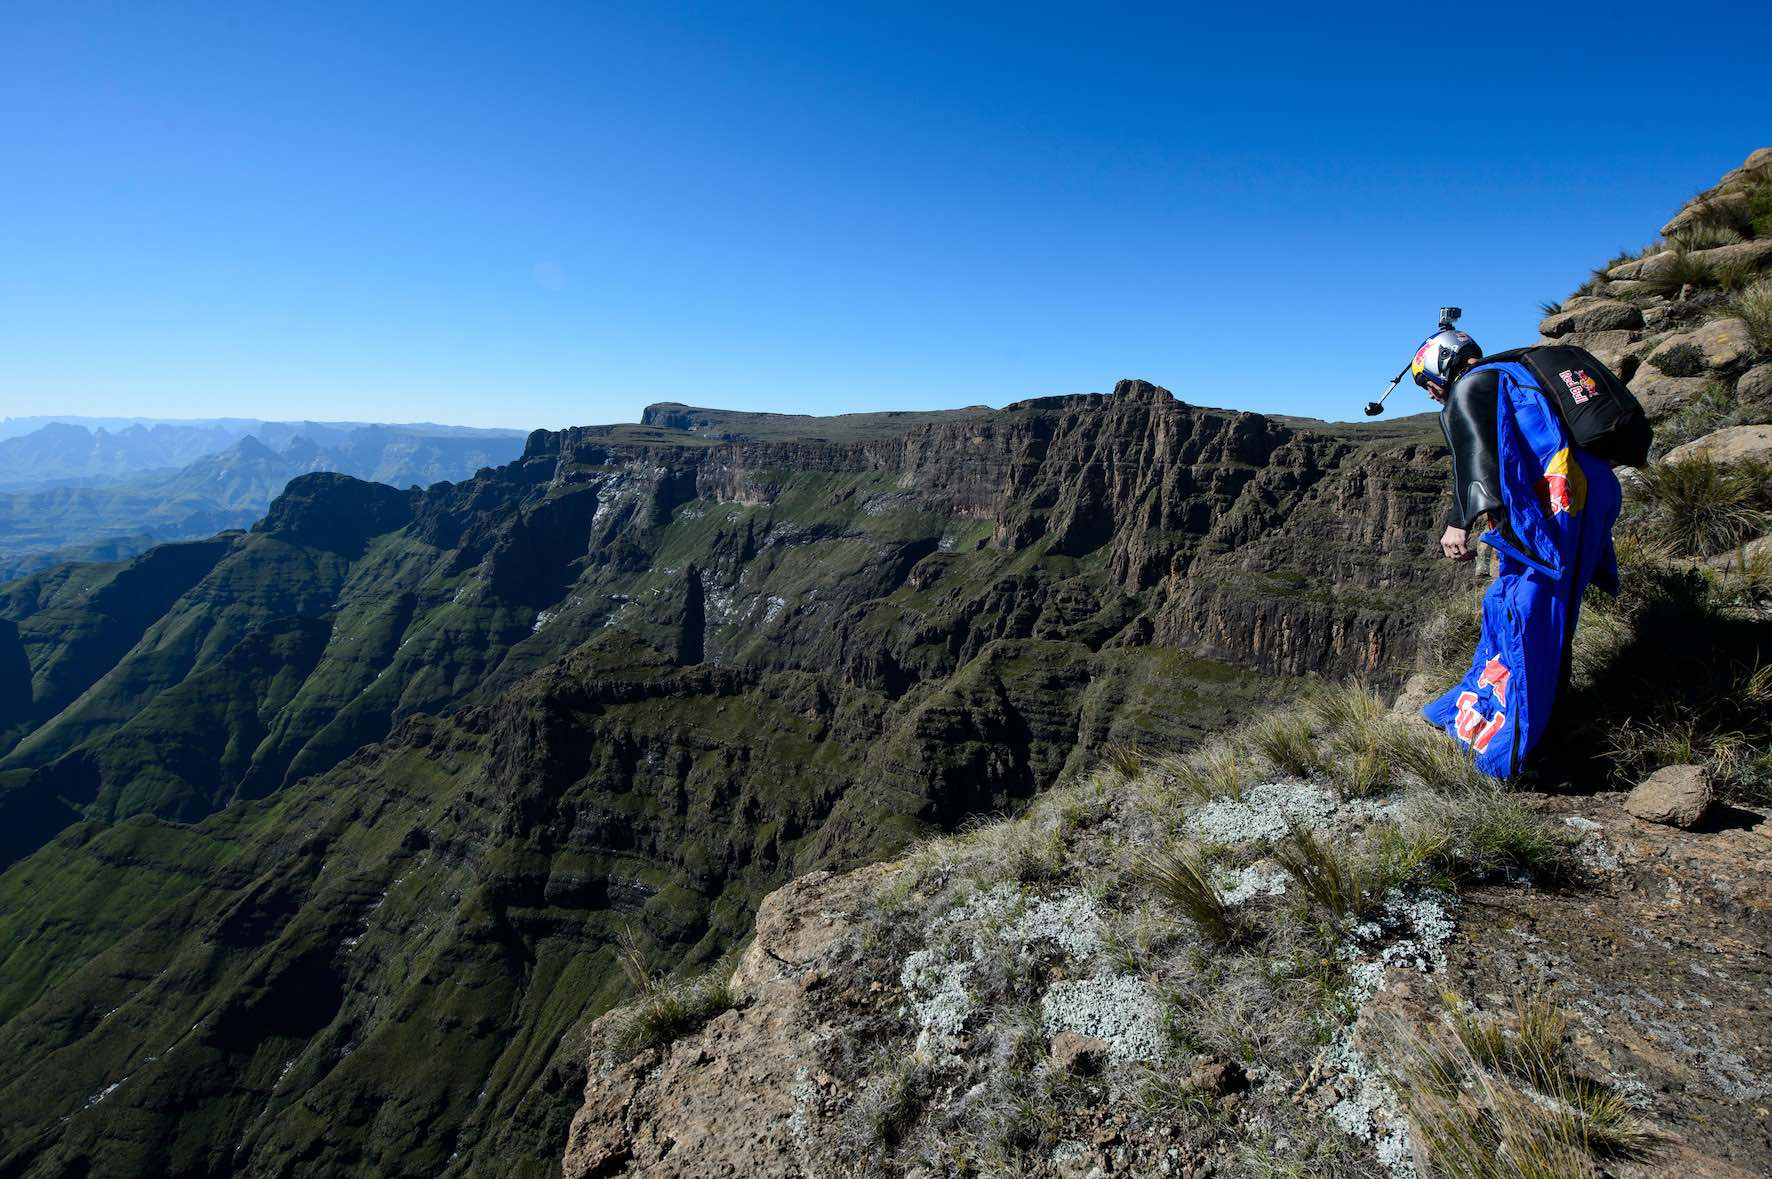 Barrier of spears flying wingsuits through the Drakensburg